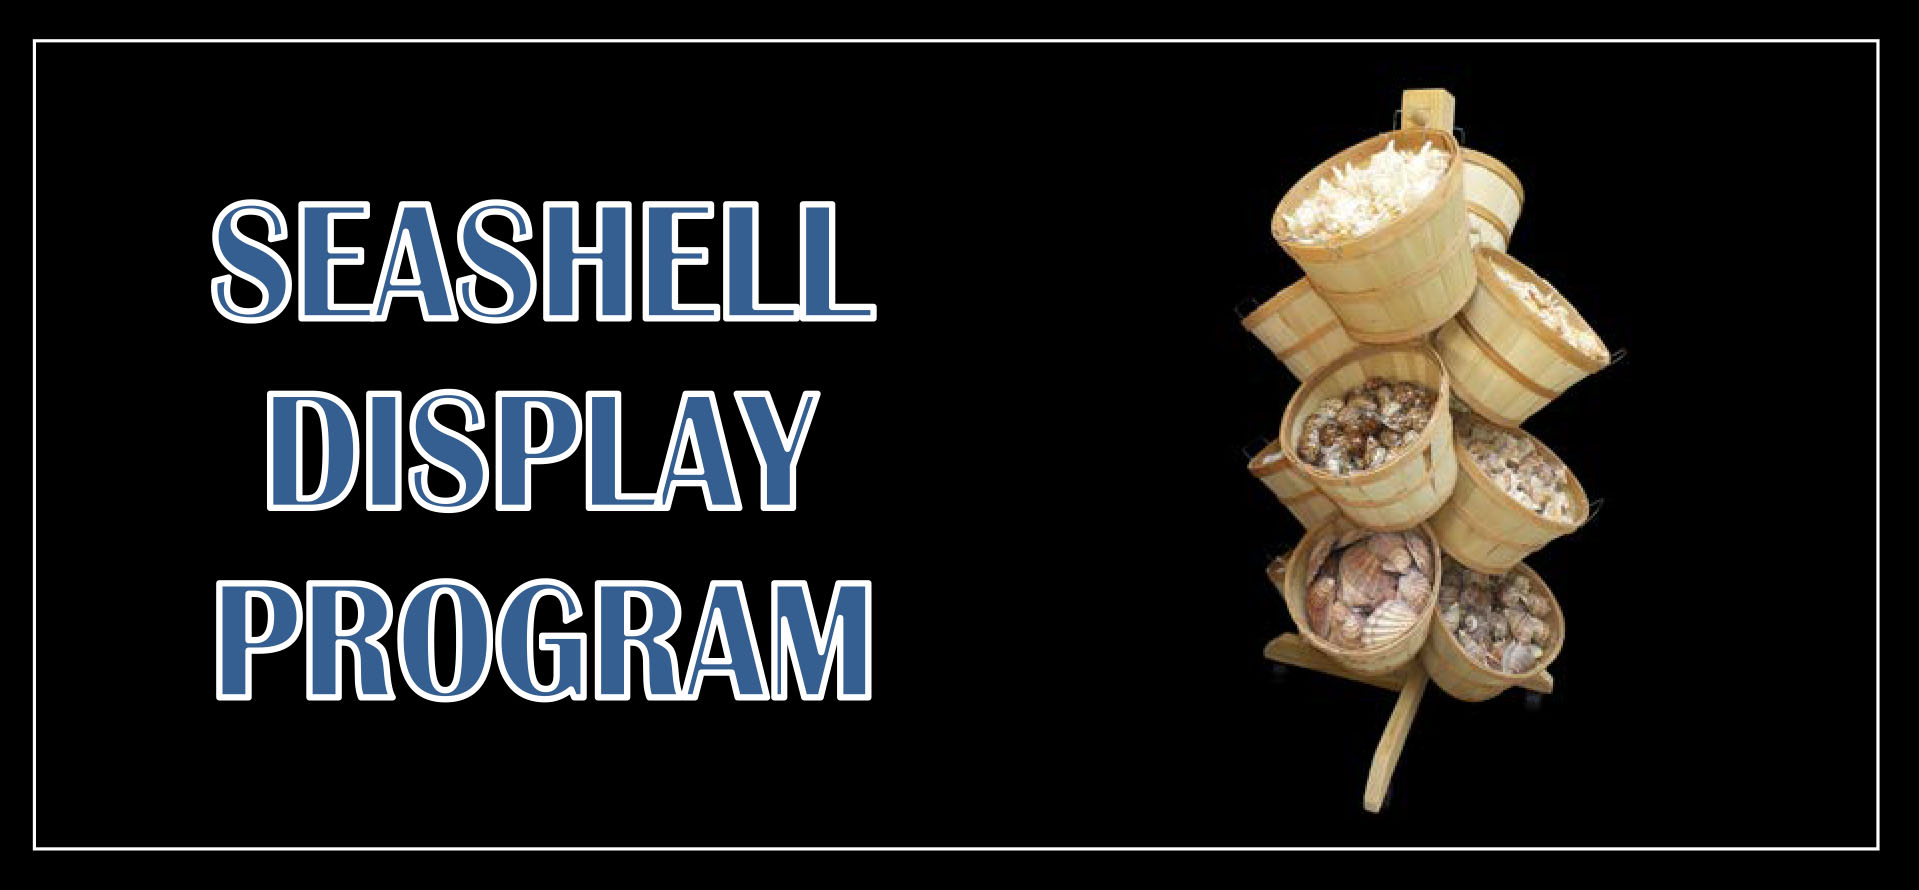 seashell-display-program.jpg